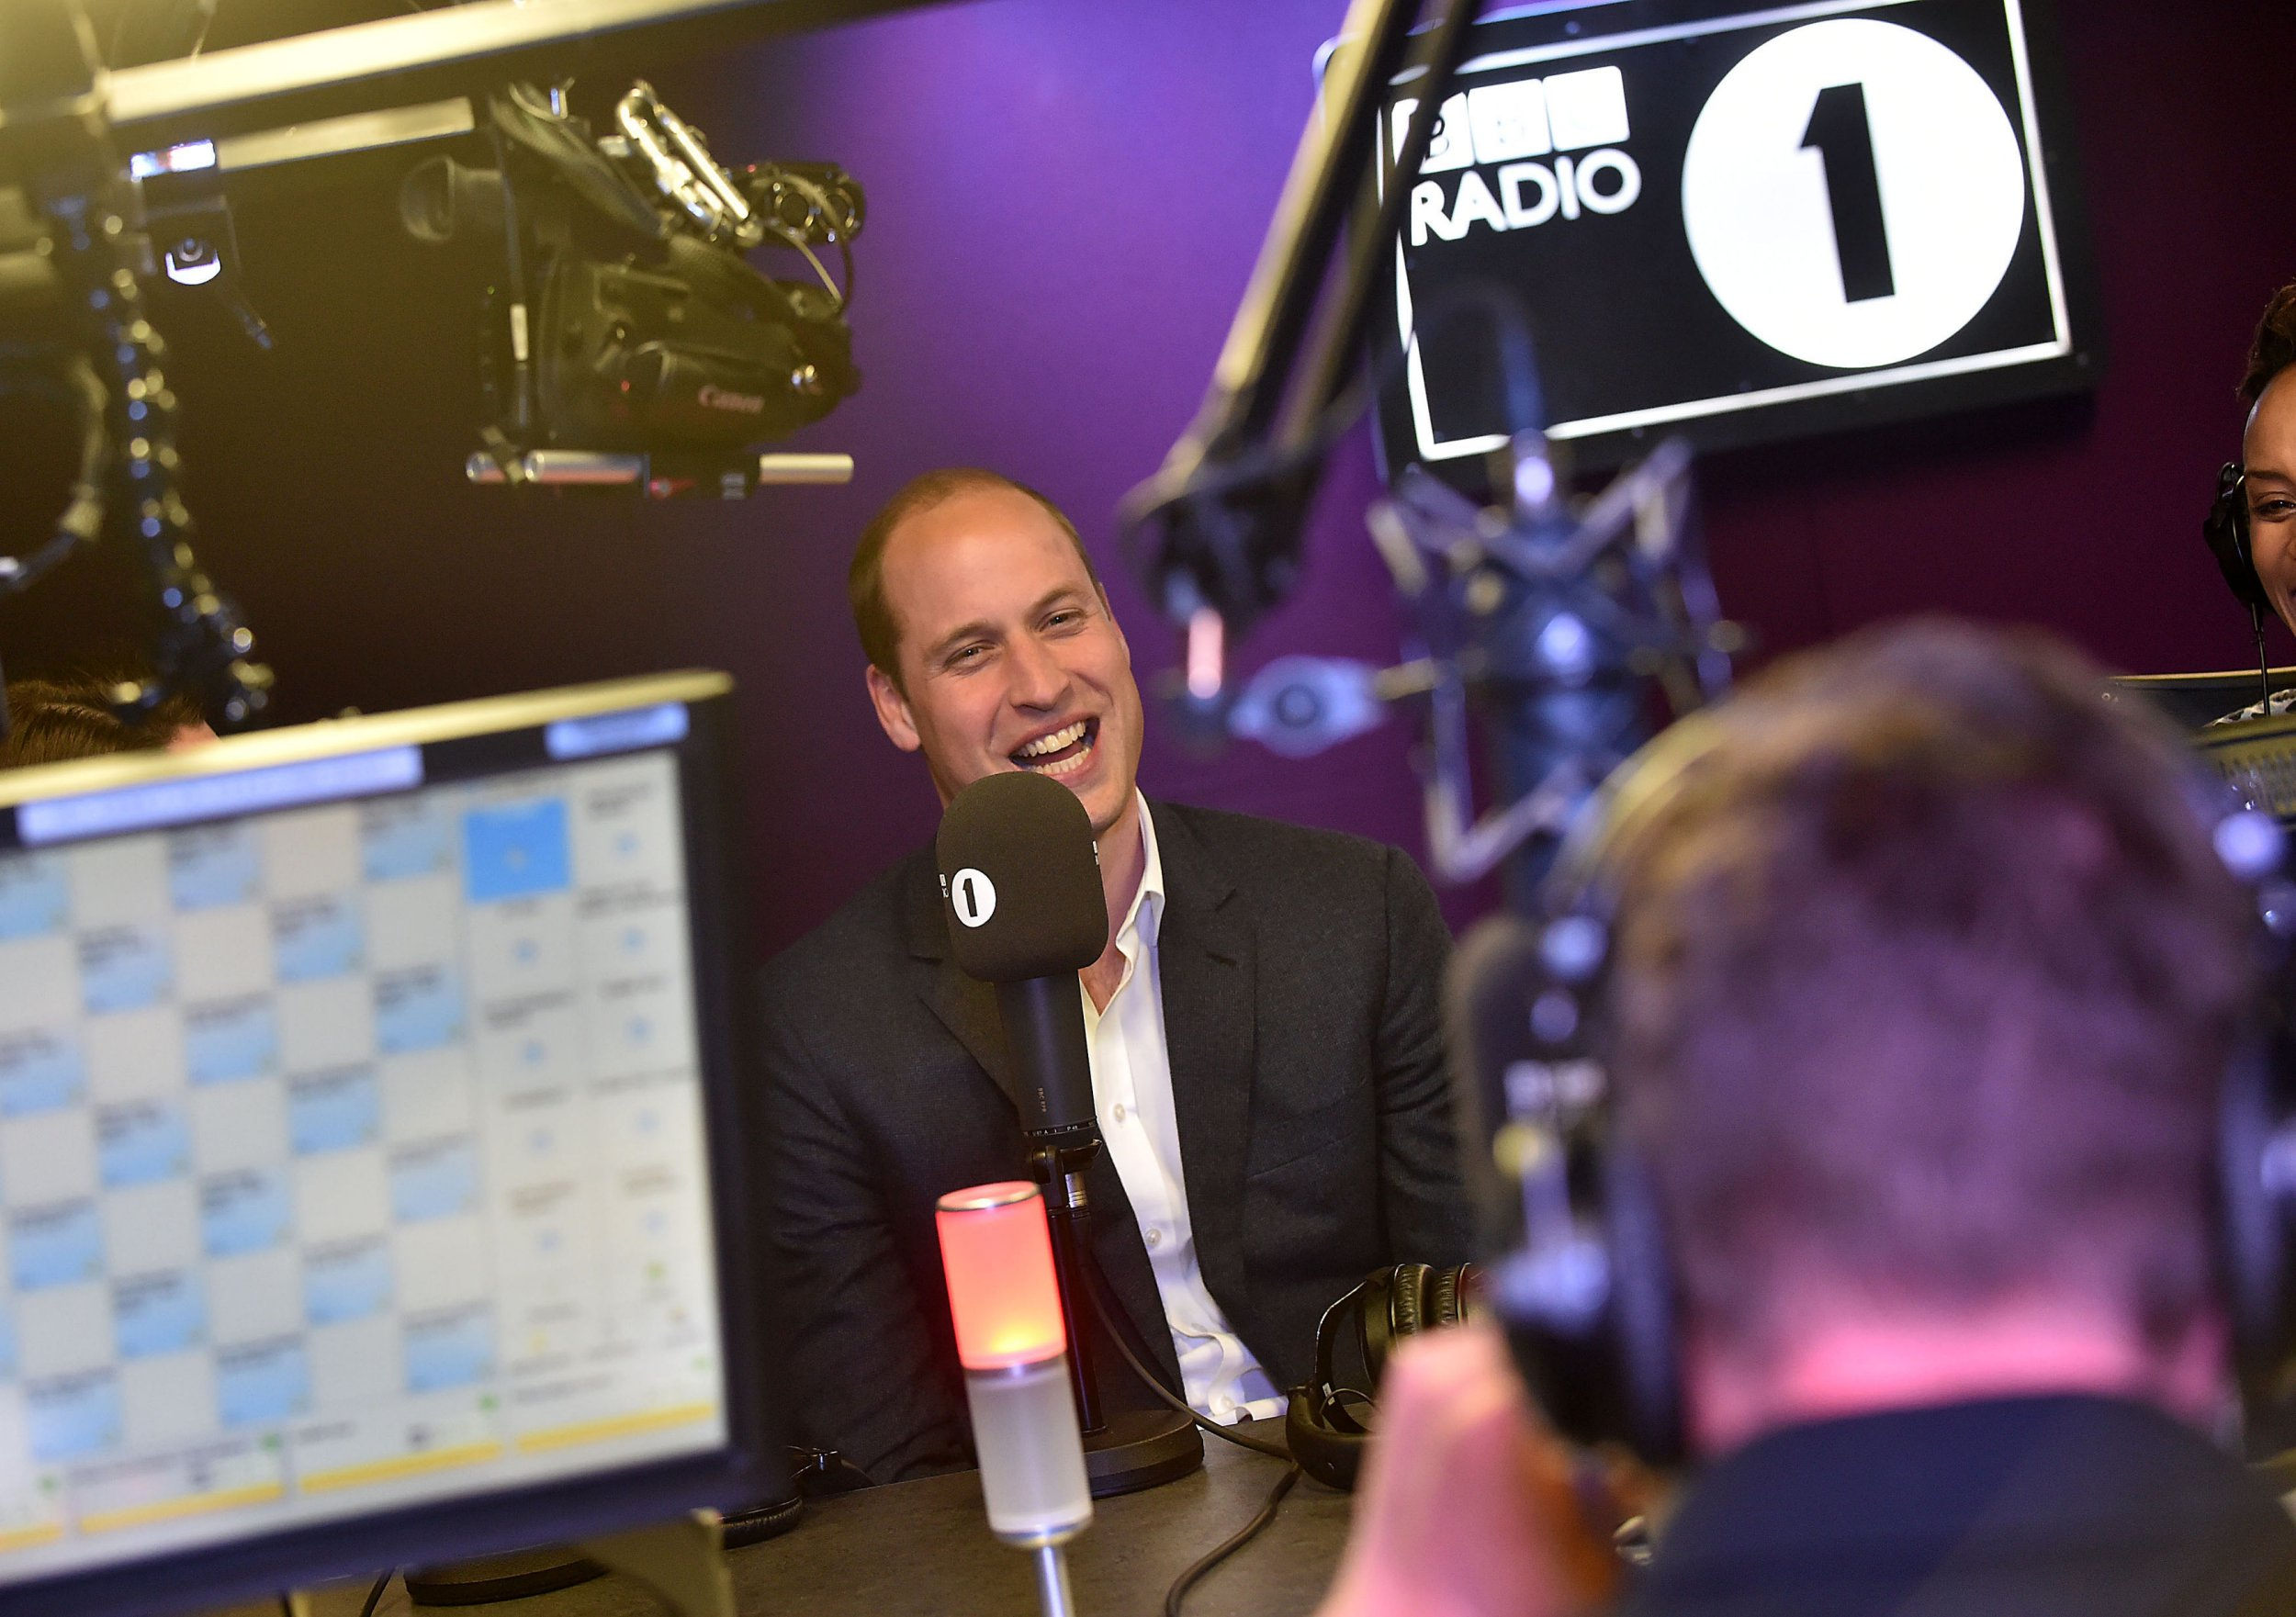 Prince William jokes about his 'dad-dancing' at Swiss nightclub during Radio 1 chat about going to gigs